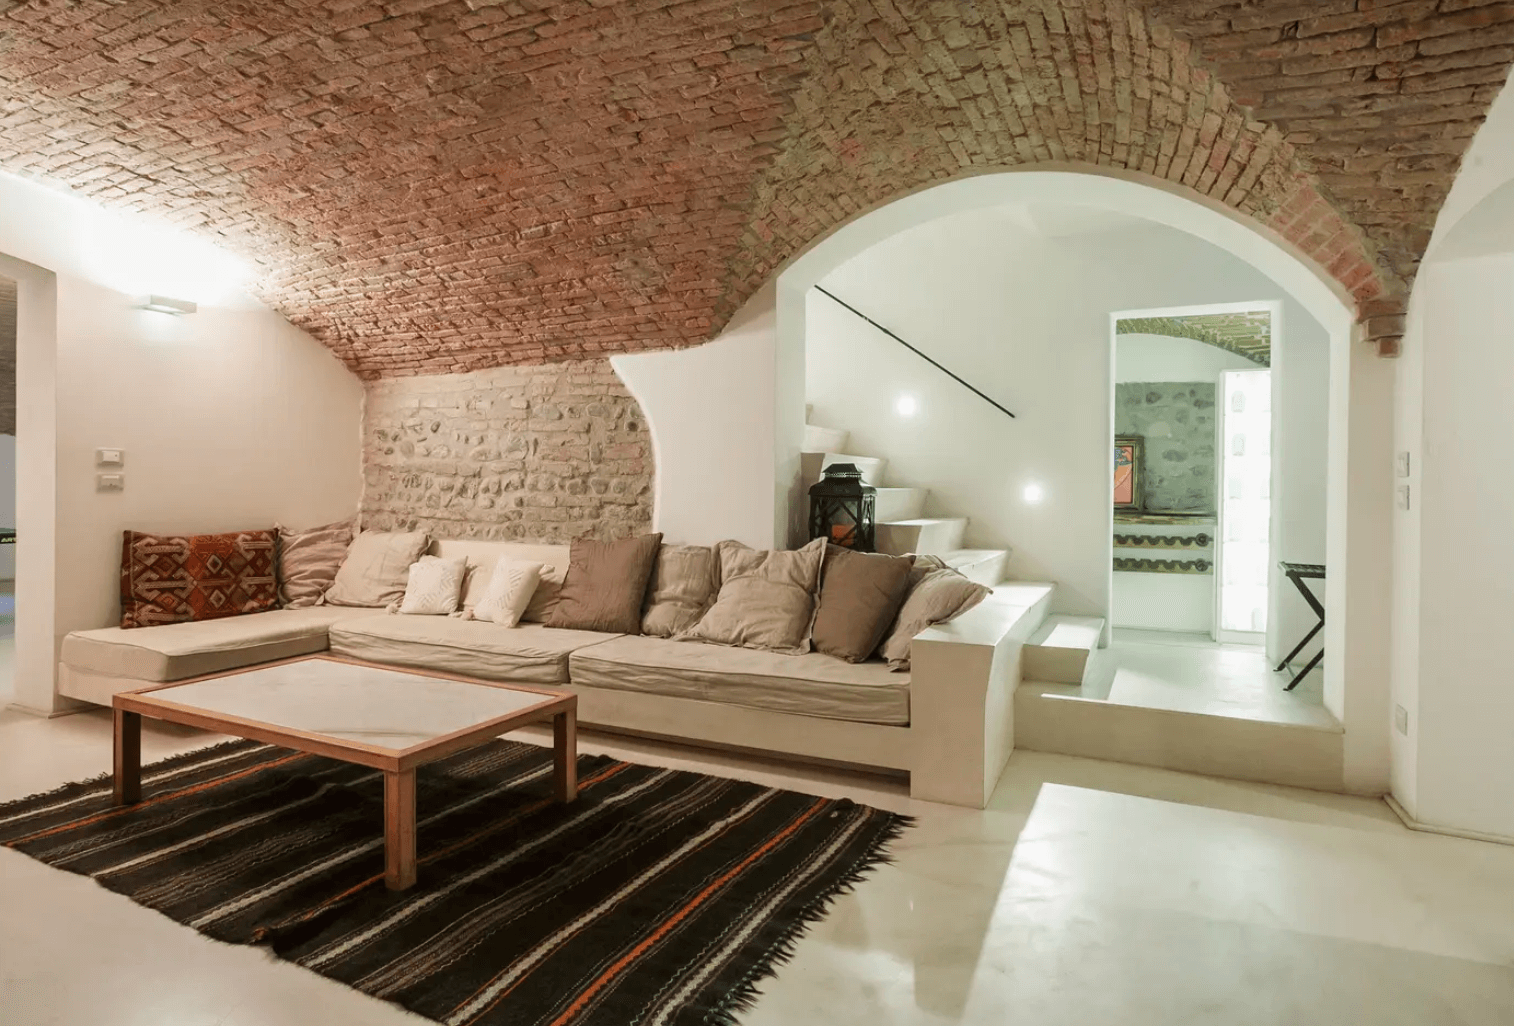 an image of a bedroom of an airbnb in Bologna, Italy